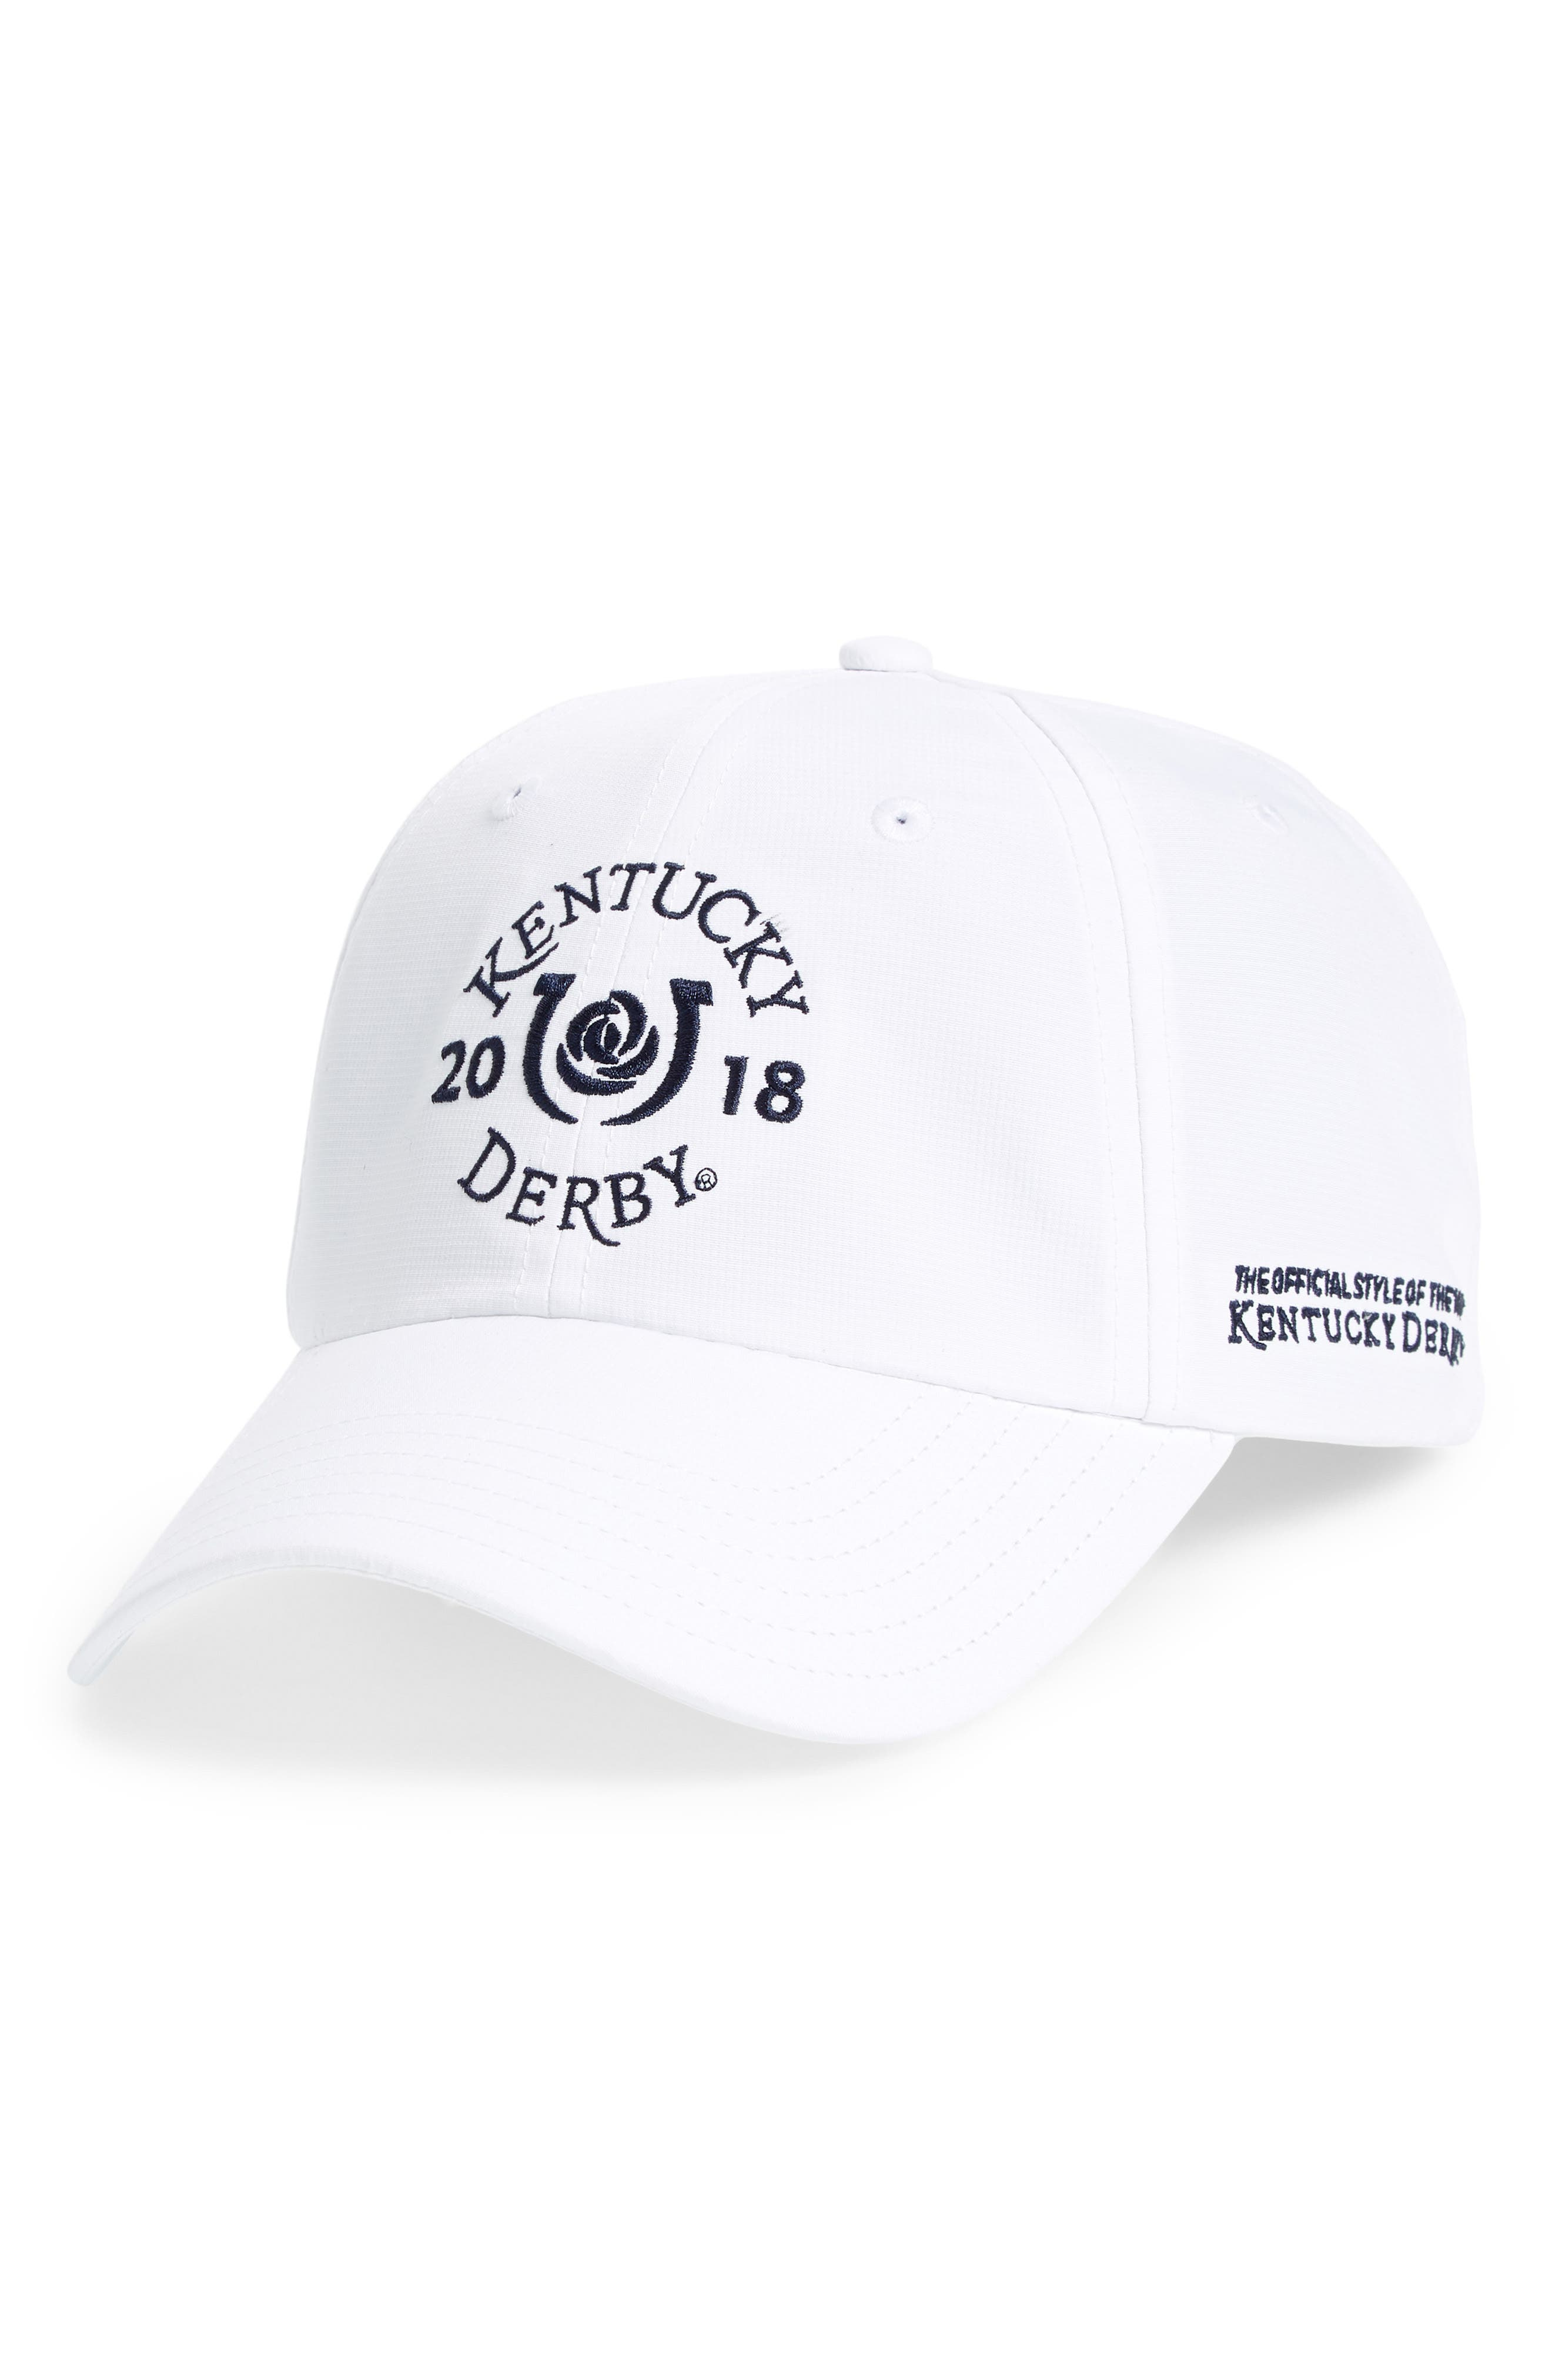 2018 Kentucky Derby<sup>®</sup> Garland of Roses Cap,                         Main,                         color, White Cap